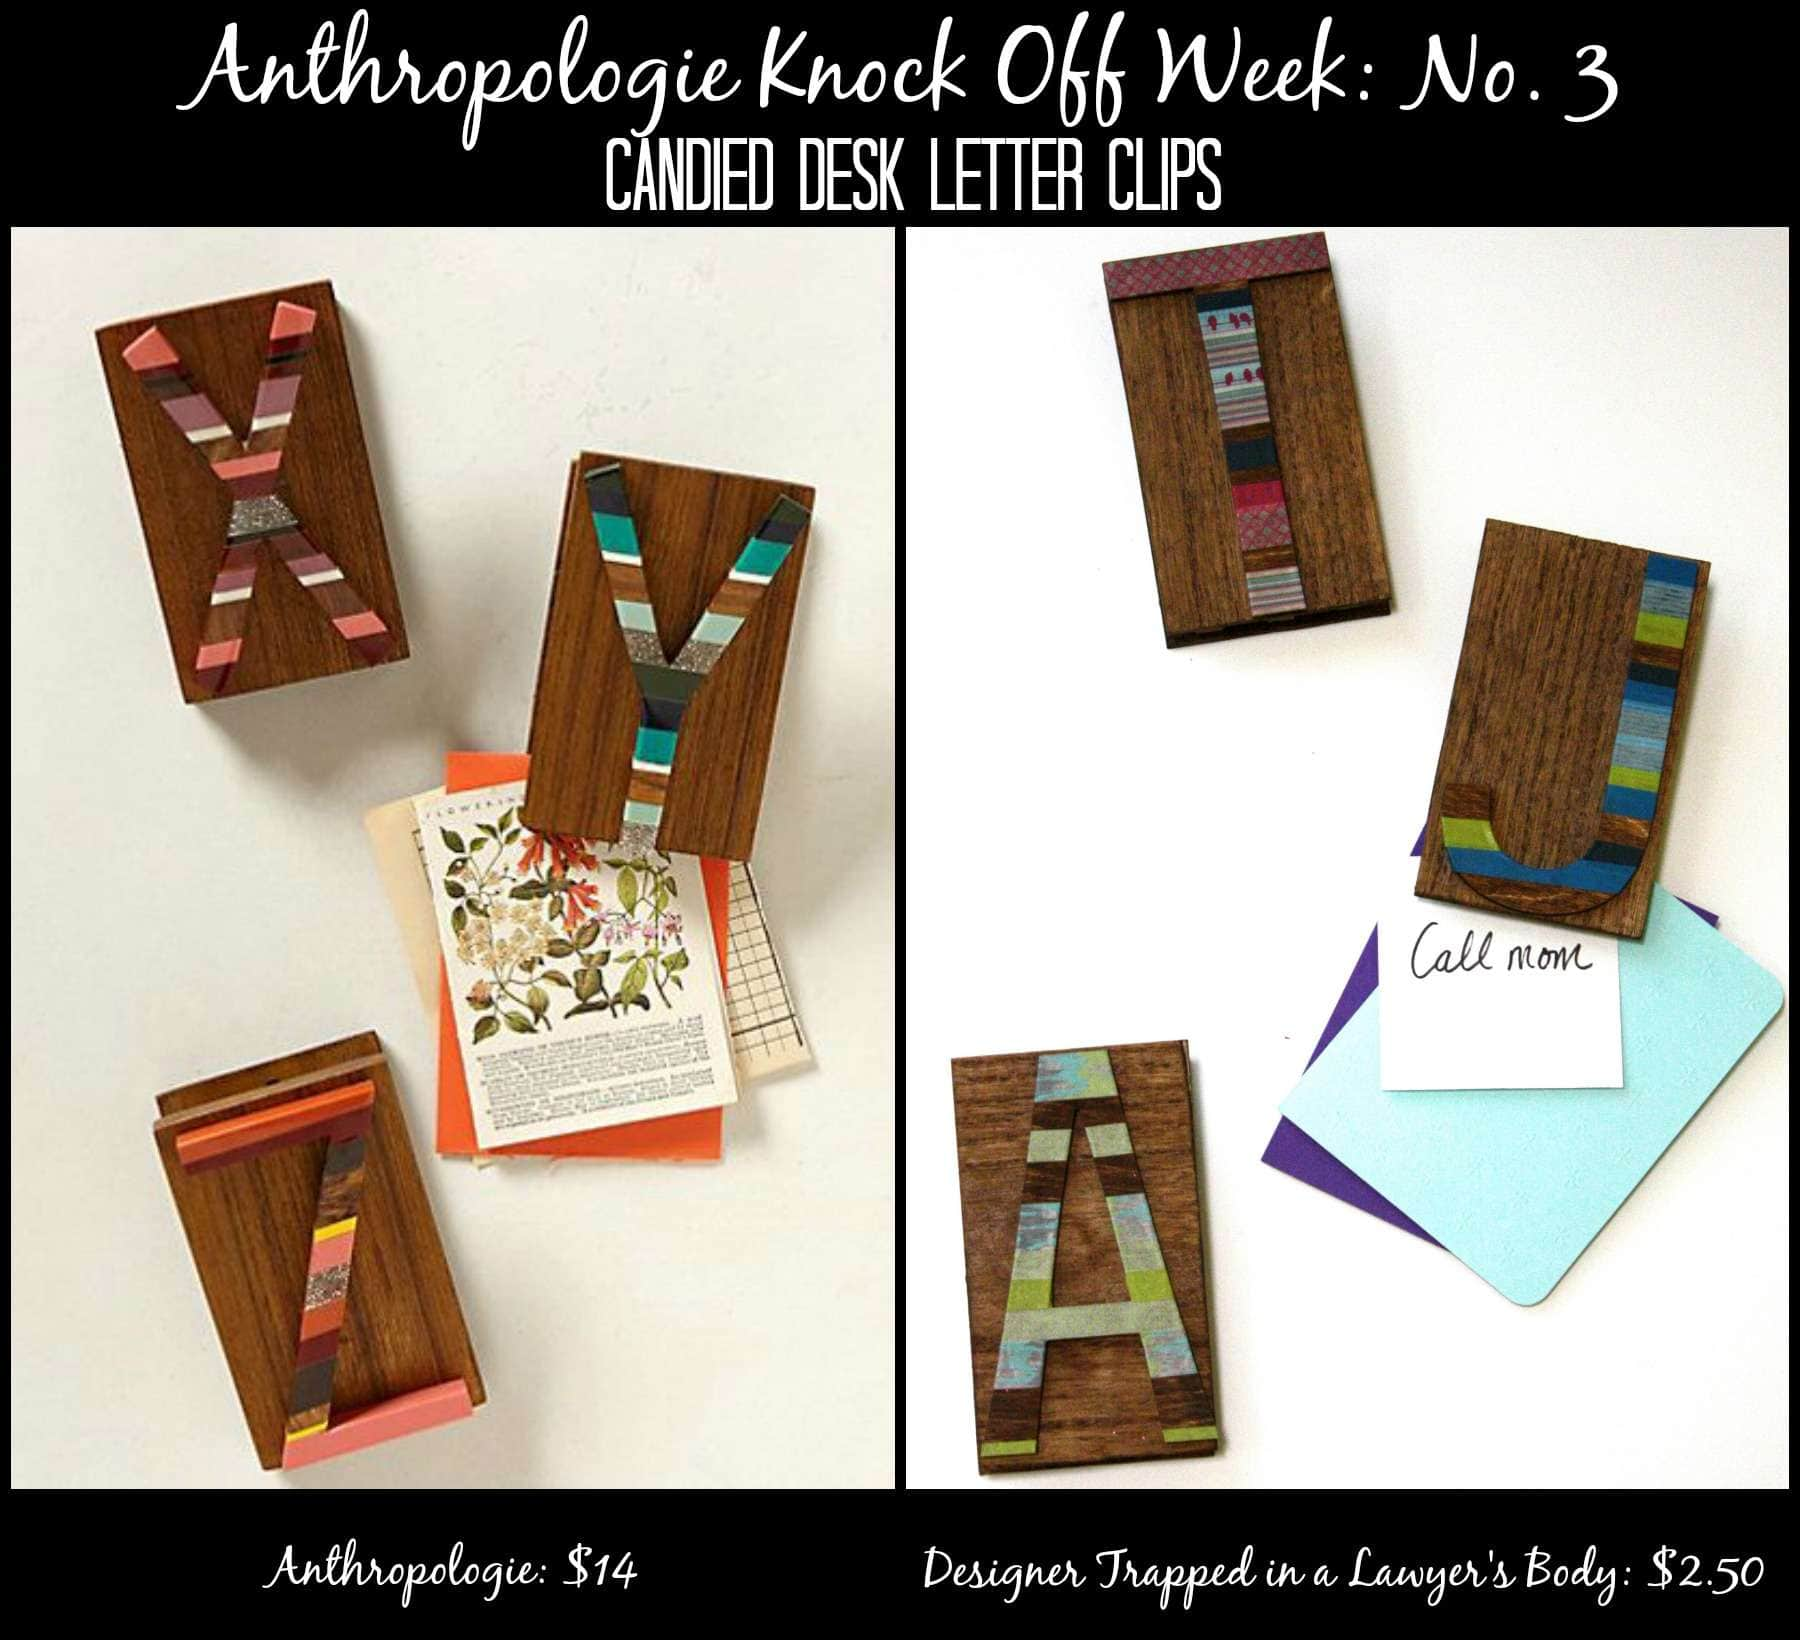 Anthro Letter Desk Clips